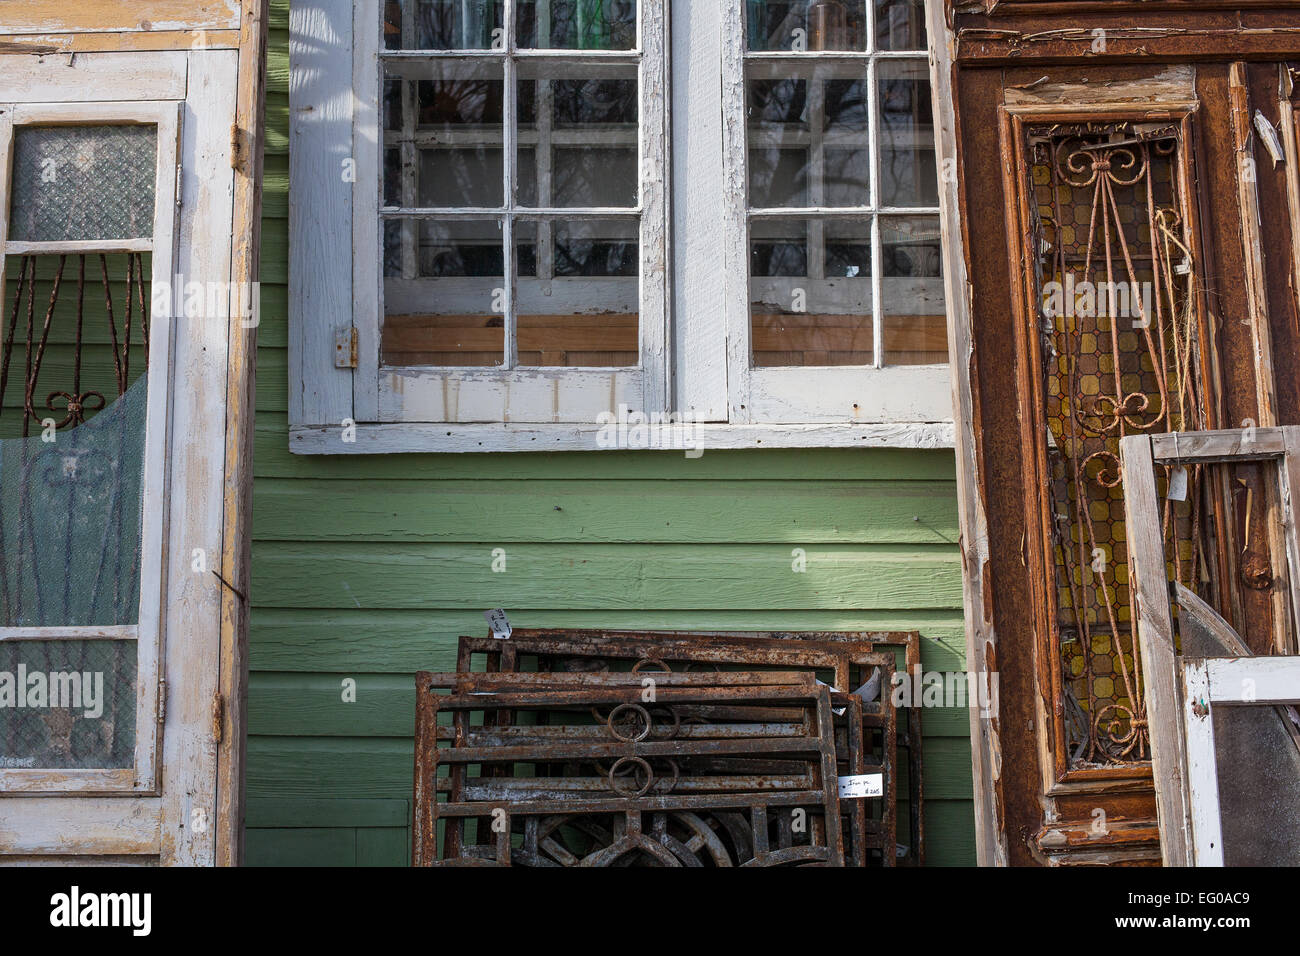 Display of old doors and iron grates against green painted outside wall of antique shop. & Display of old doors and iron grates against green painted outside ...